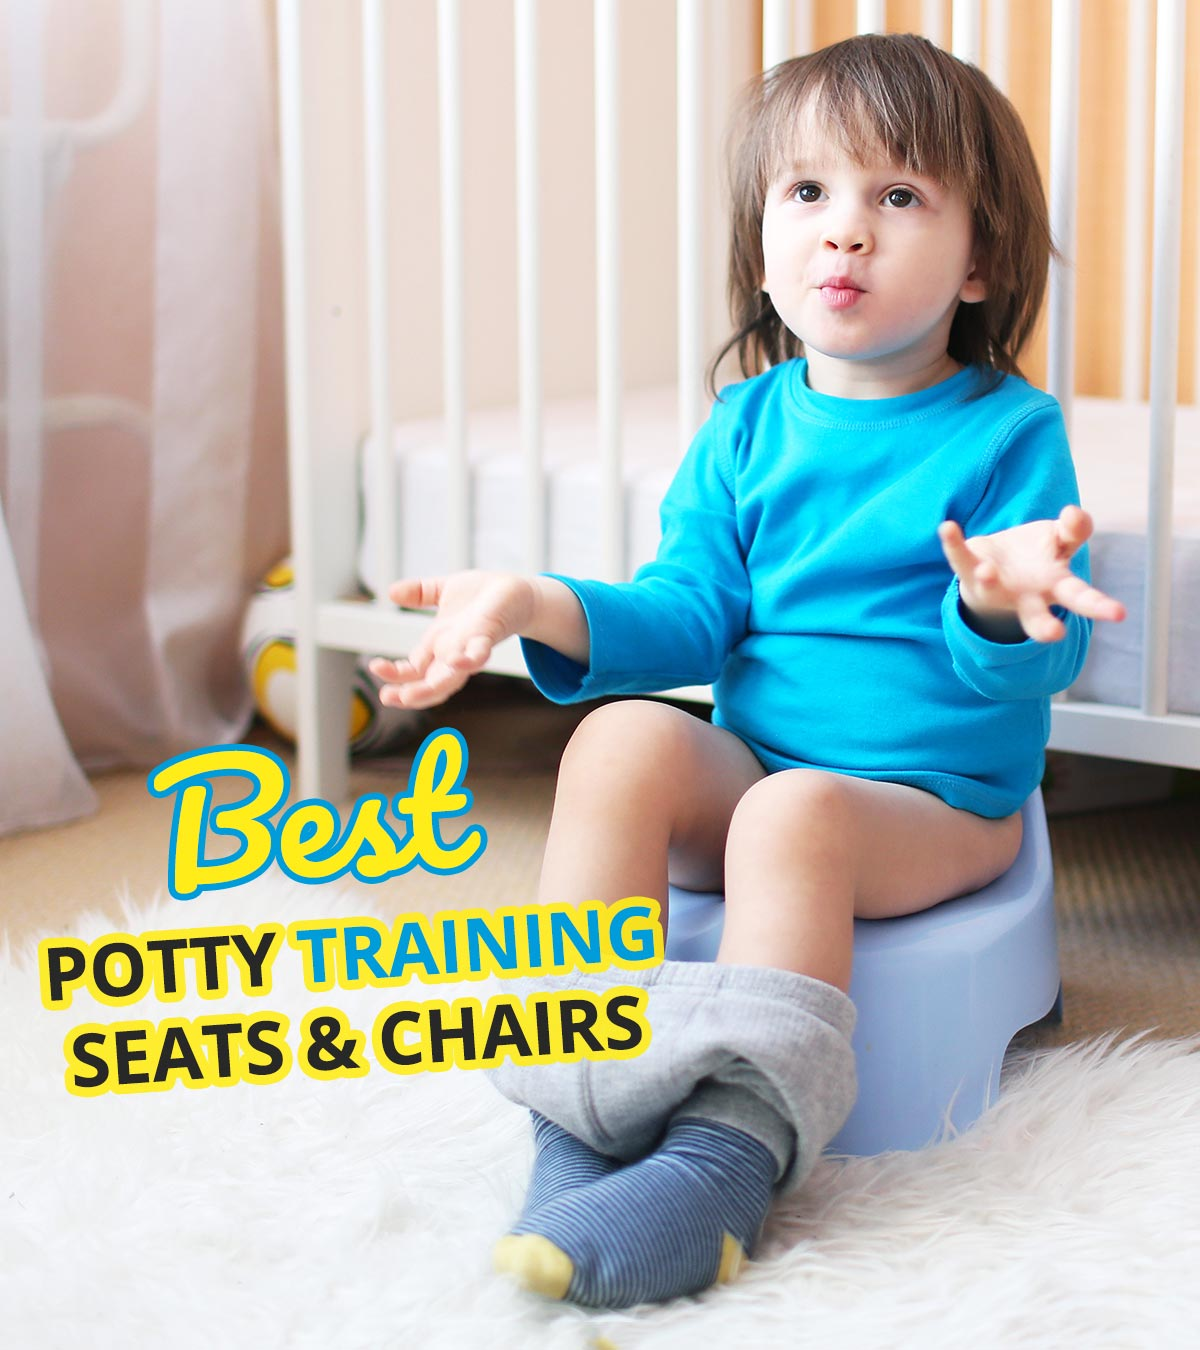 Astounding 15 Best Potty Training Seats And Chairs For Toddlers Machost Co Dining Chair Design Ideas Machostcouk